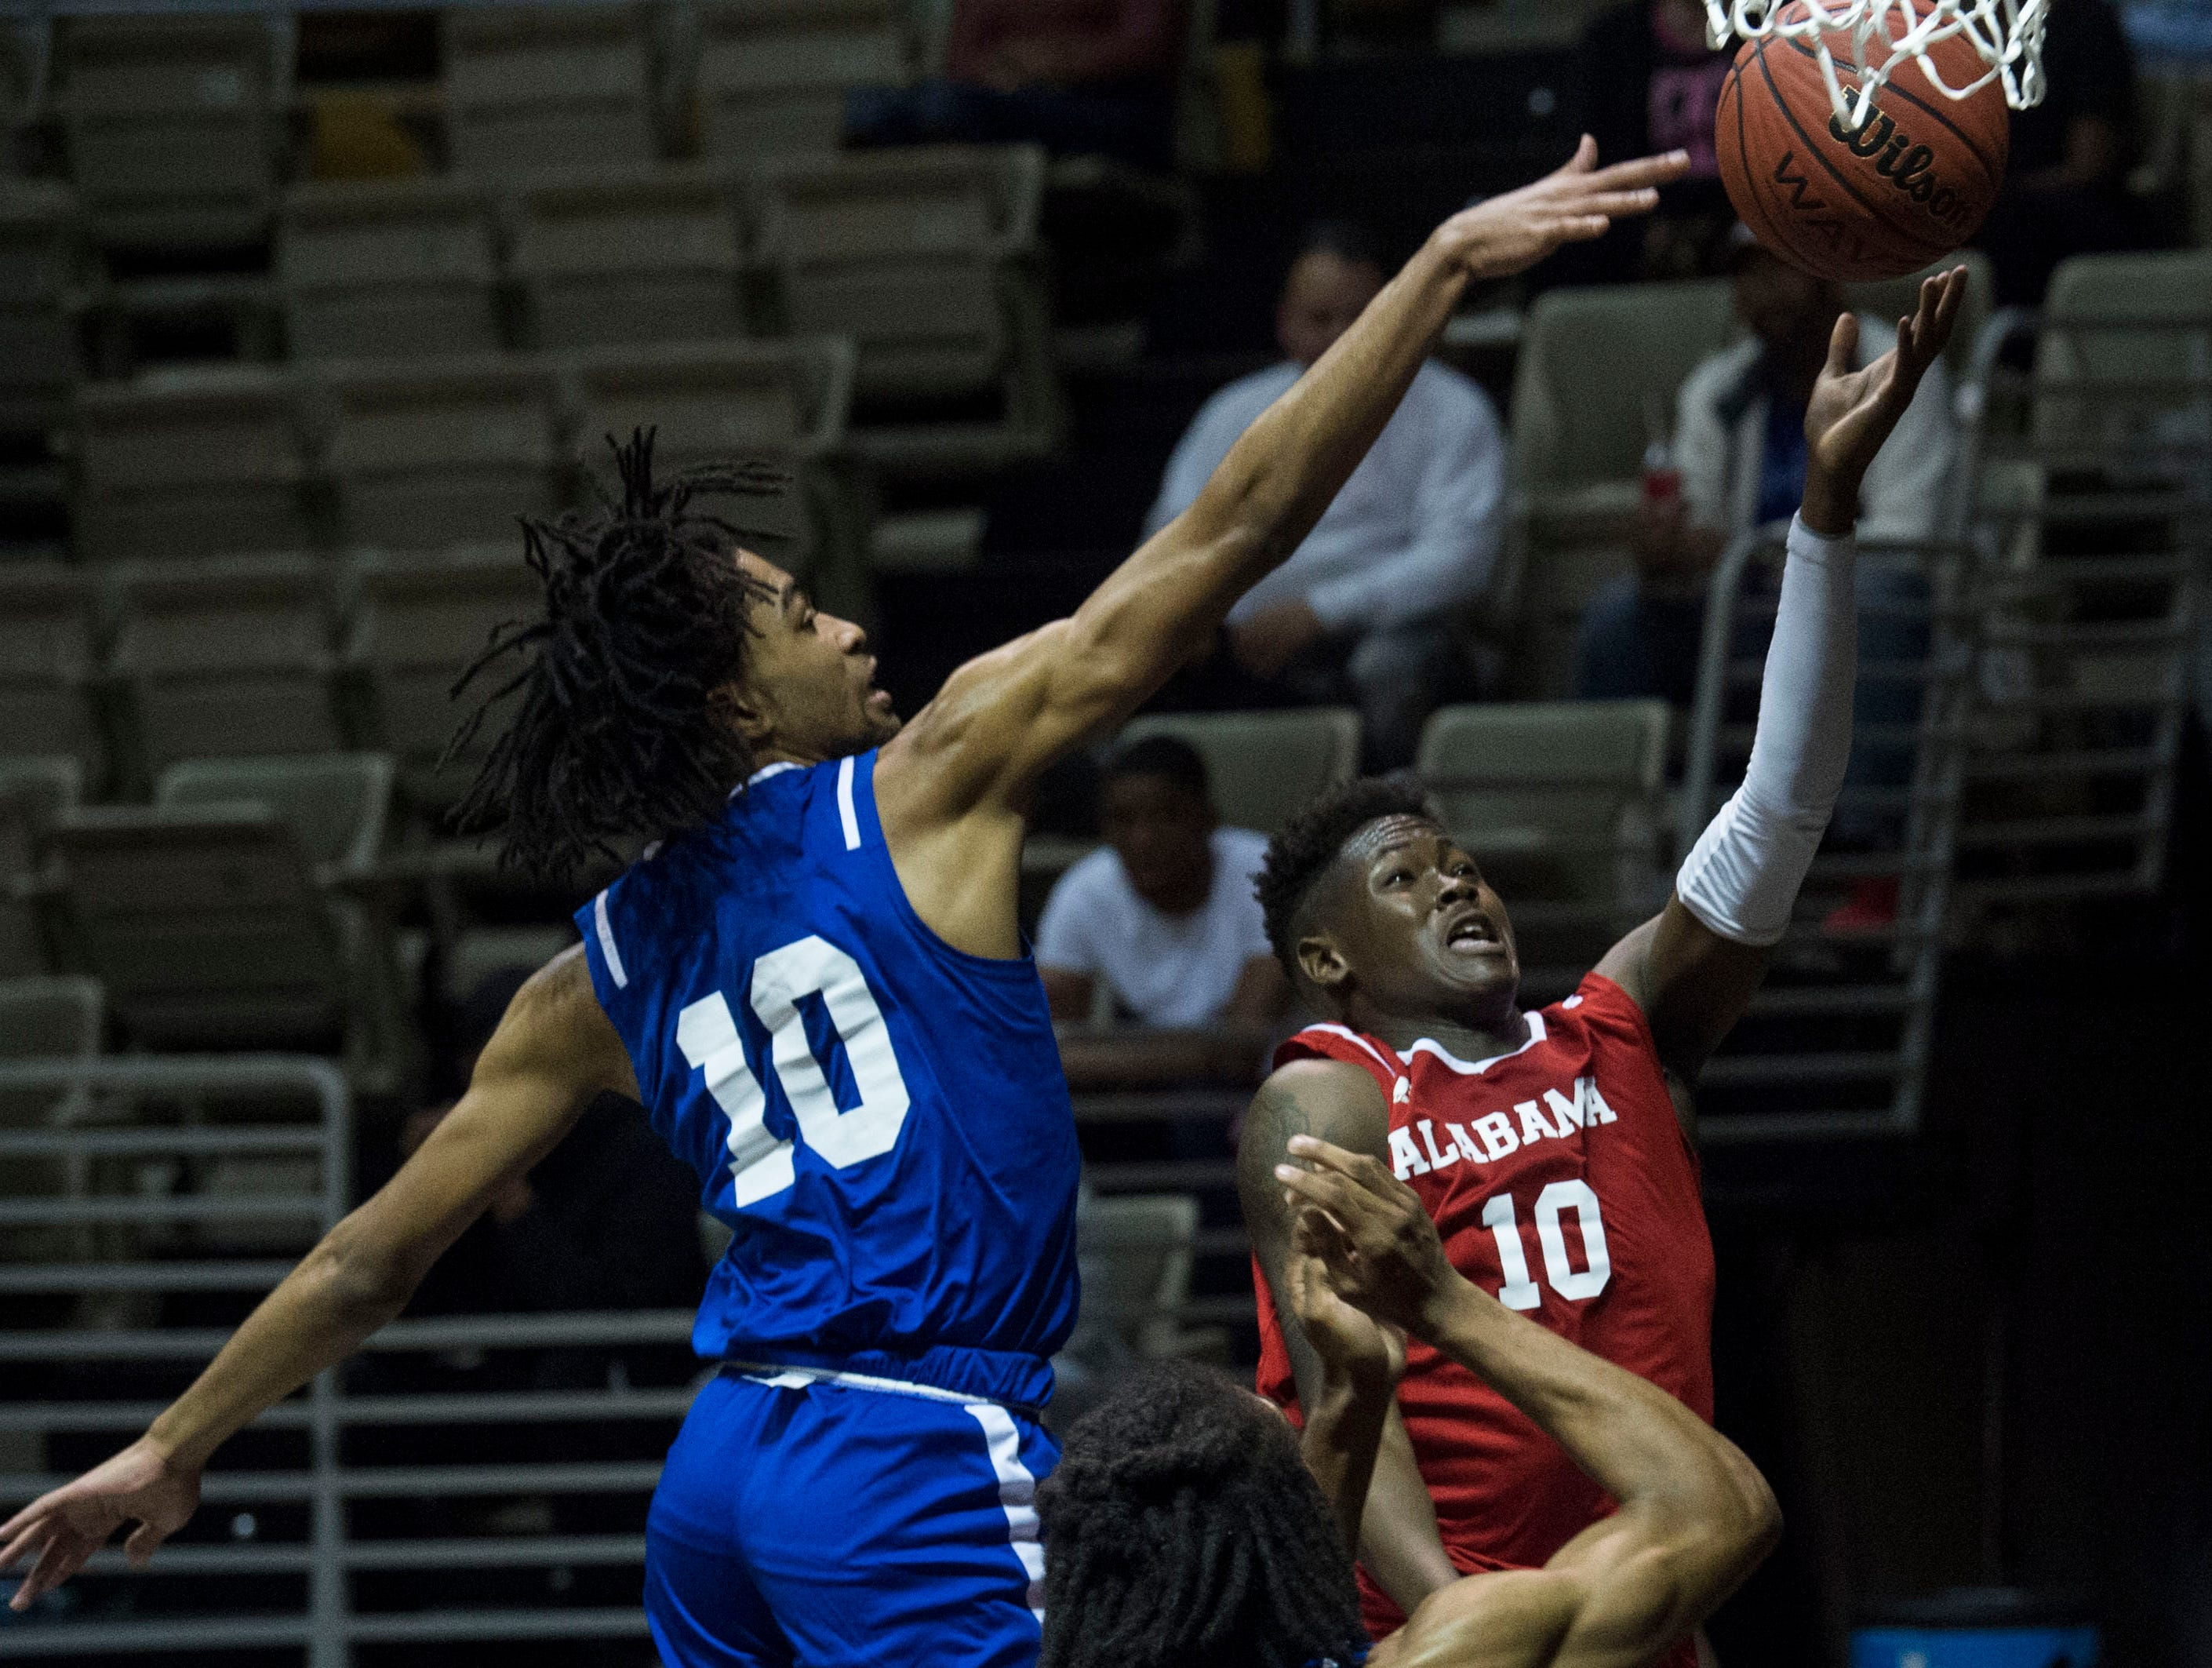 Alabama's Desmond Williams (10) goes up for a layup during the Alabama-Mississippi All-Star game at the Dunn-Oliver Acadome in Montgomery, Ala., on Friday, March 15, 2019. Mississippi All-stars leads the Alabama All-stars 47-39 at halftime.